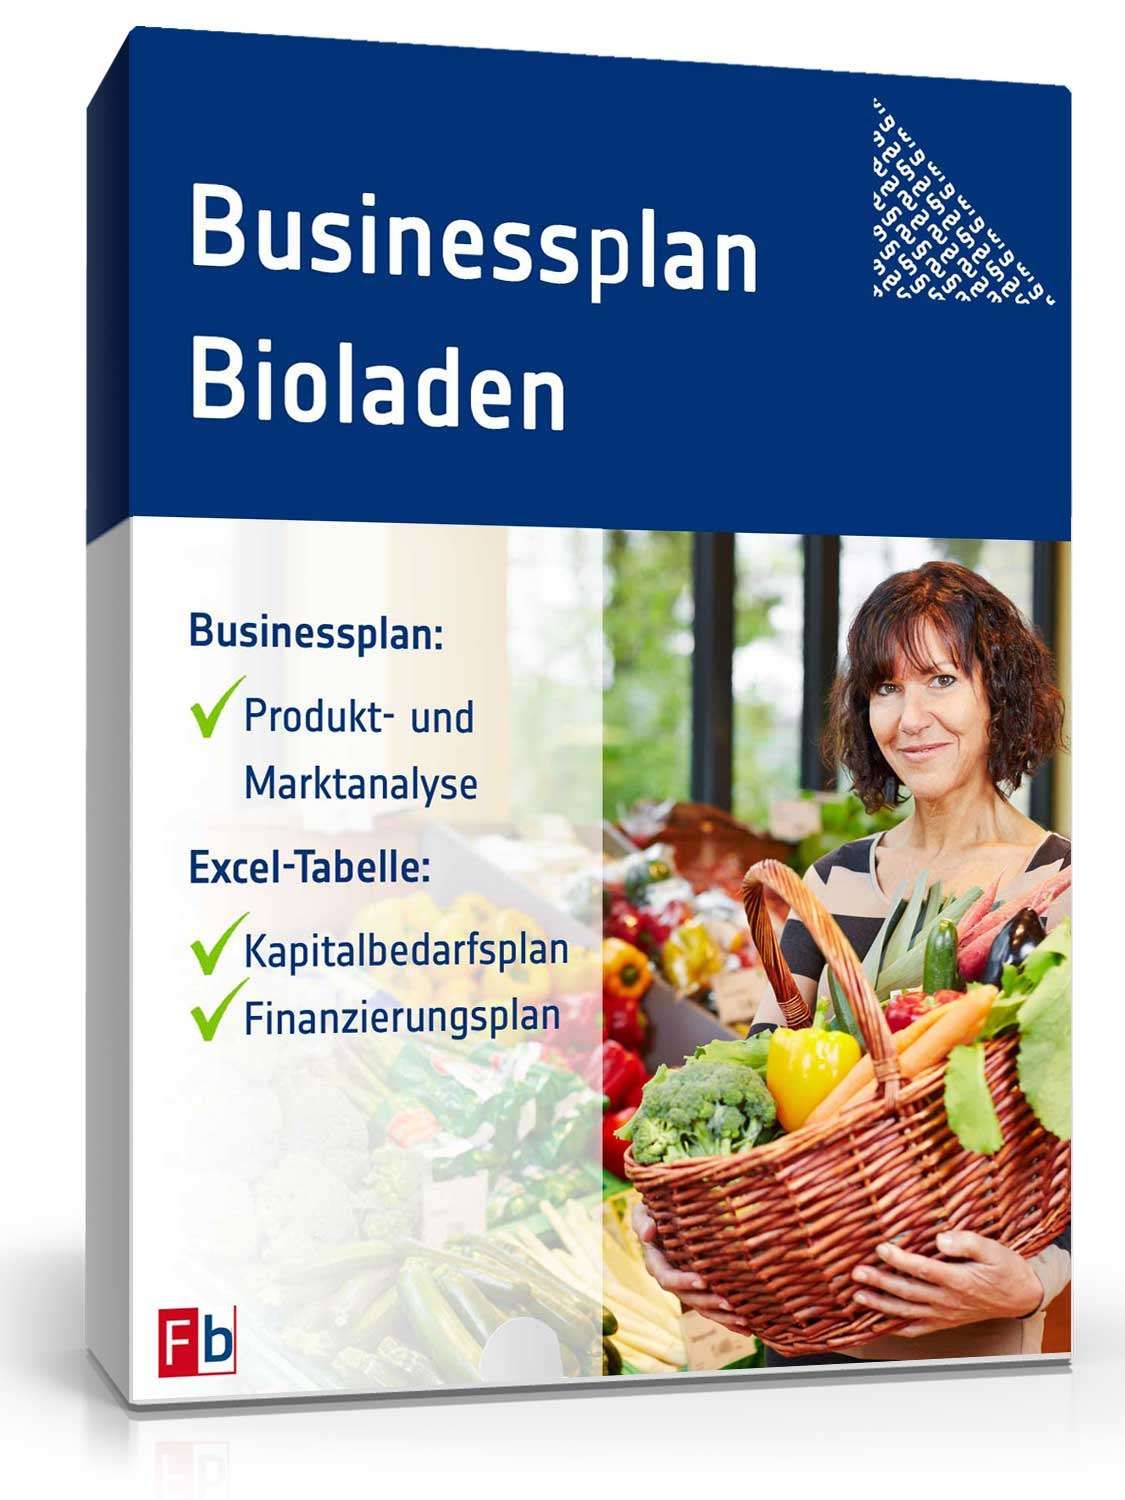 Businessplan Bioladen